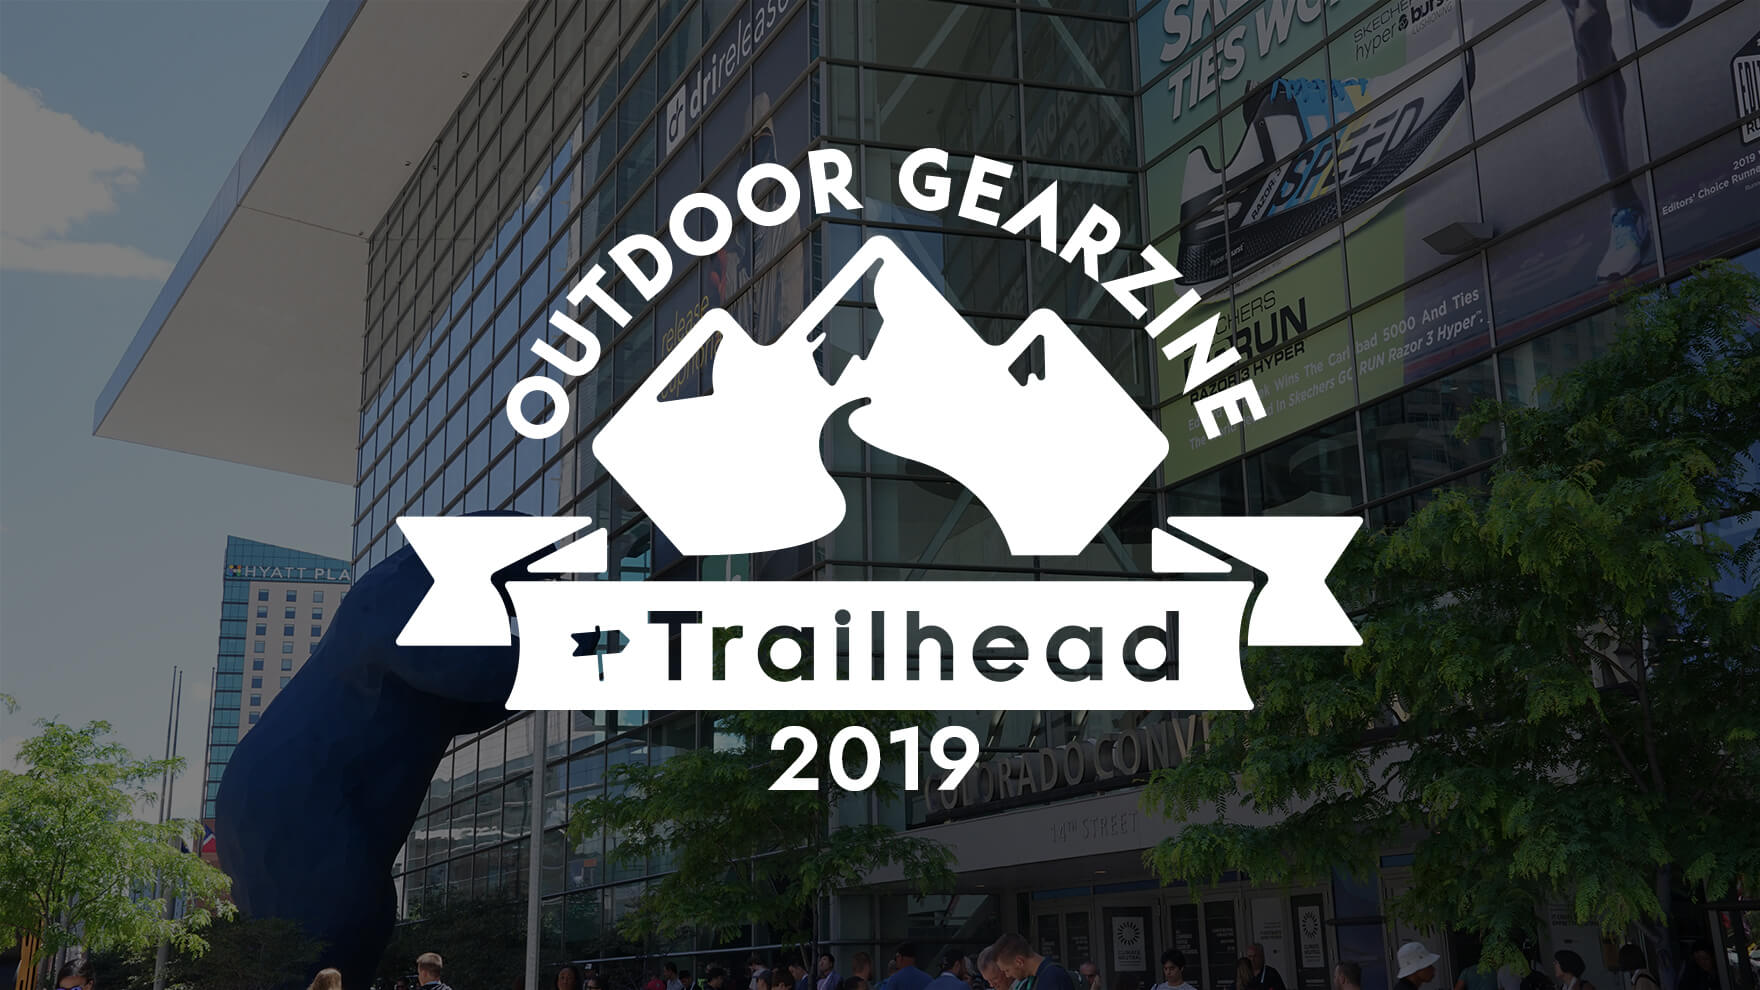 "Outdoor Gearzine 5周年イベント ""Outdoor Gearzine Trailhead 2019"" 開催のお知らせ!"